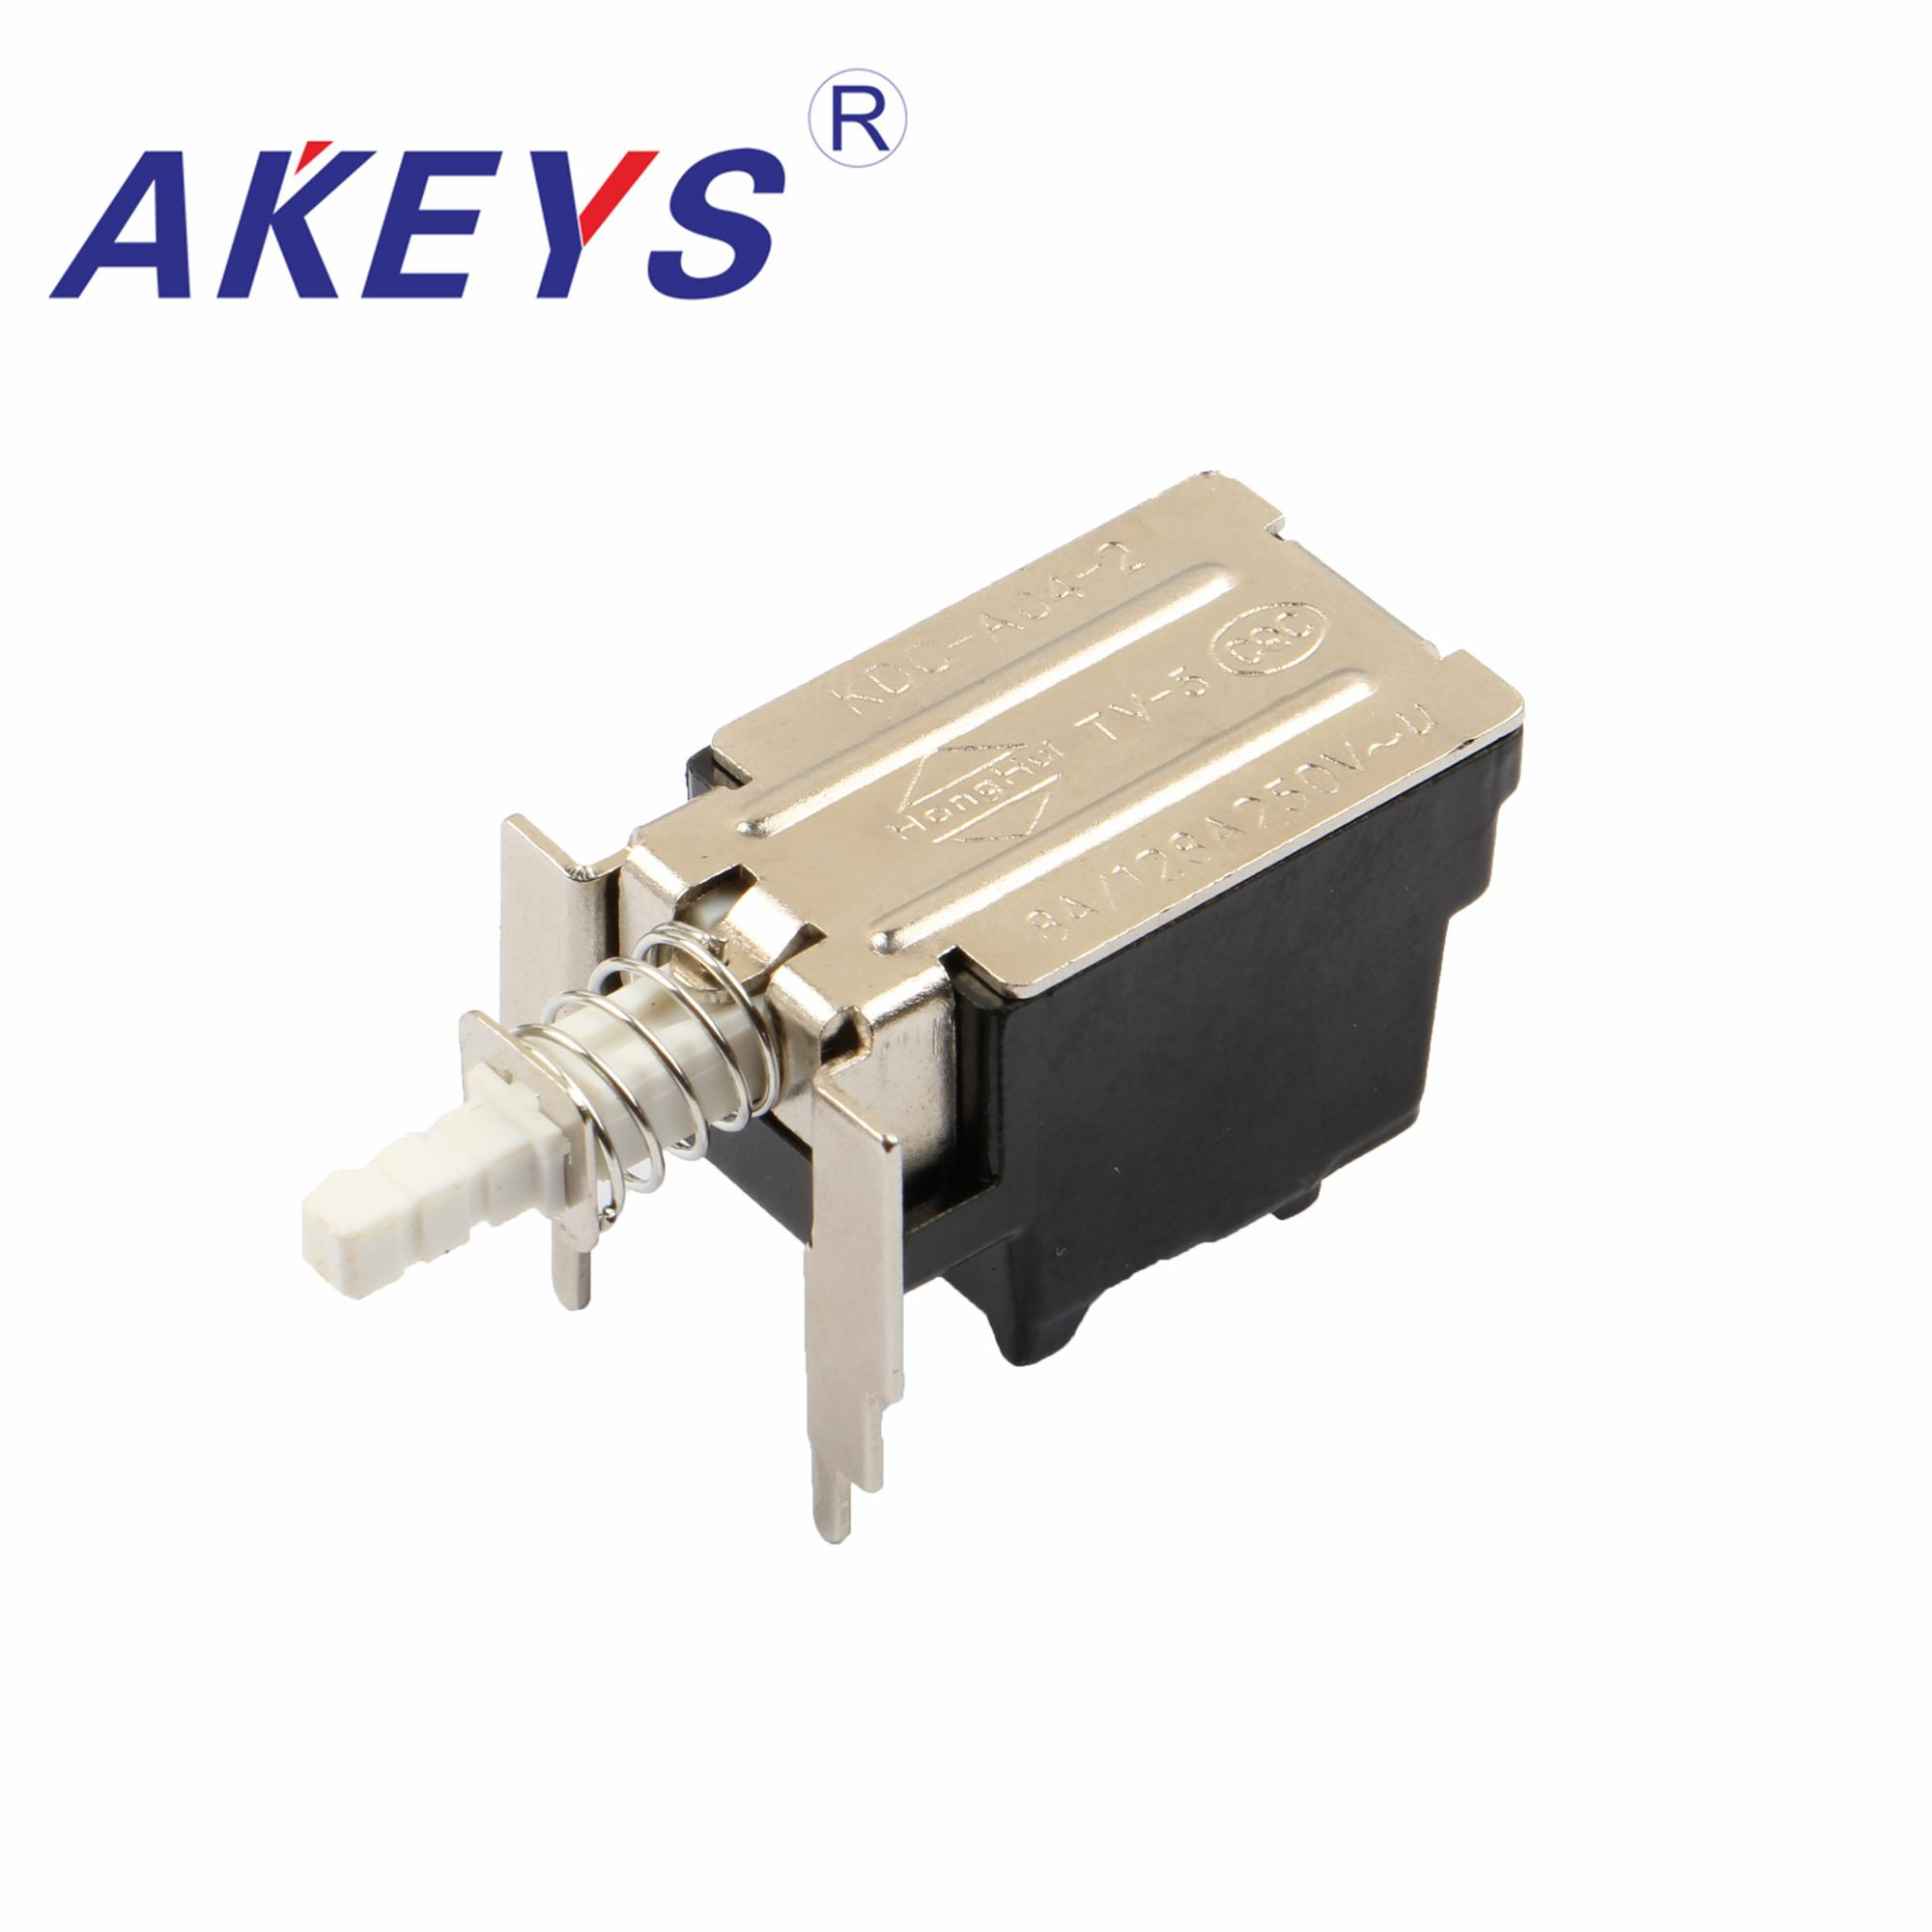 KDC-A04-2 TV-5 A04-2-20C High current power supply switch